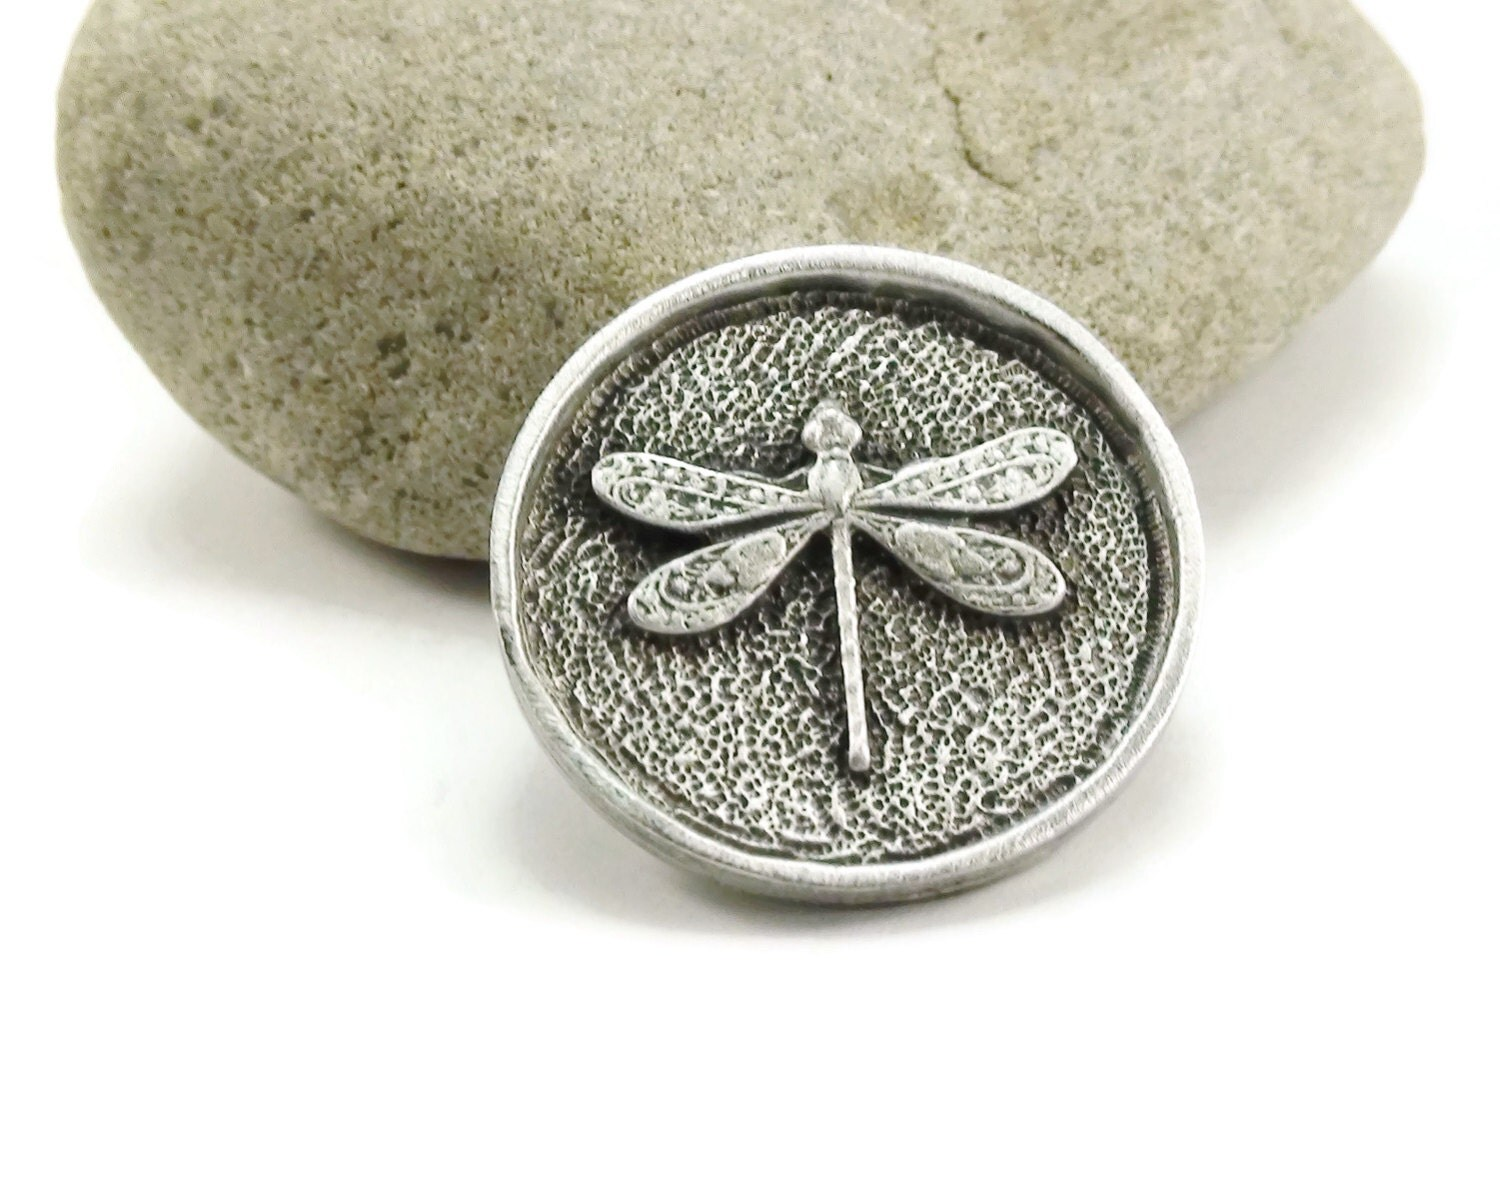 Dragonfly button metal shank button metal buttons 25mm qty for Buttons with shanks for jewelry